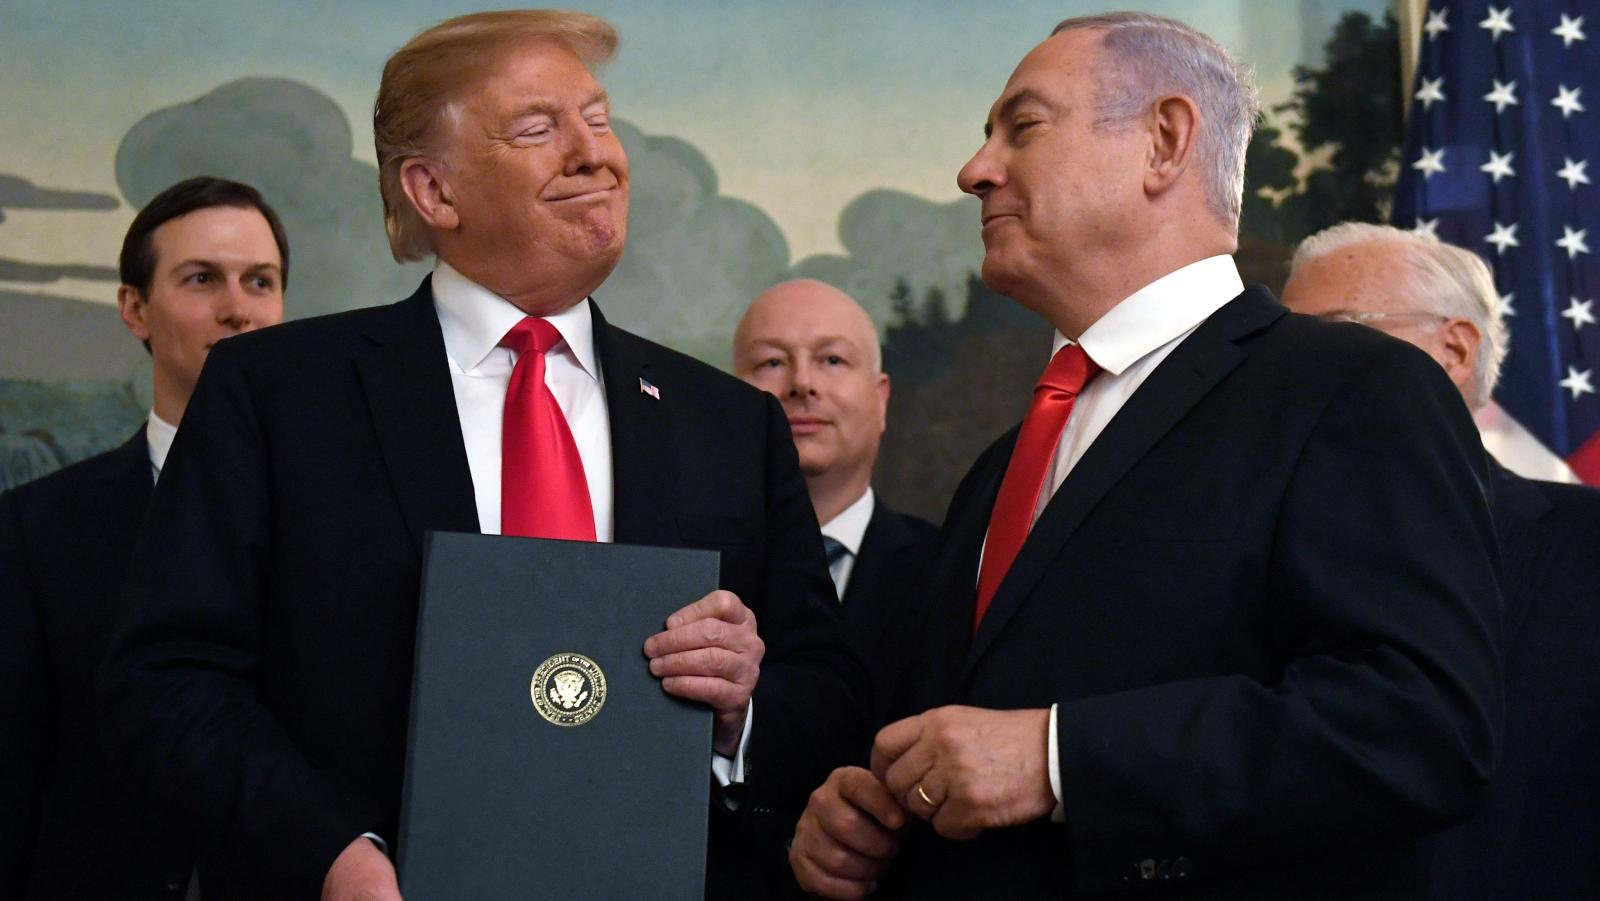 Donald Trump signed a proclamation today (March 25) recognizing the Golan Heights as part of Israel